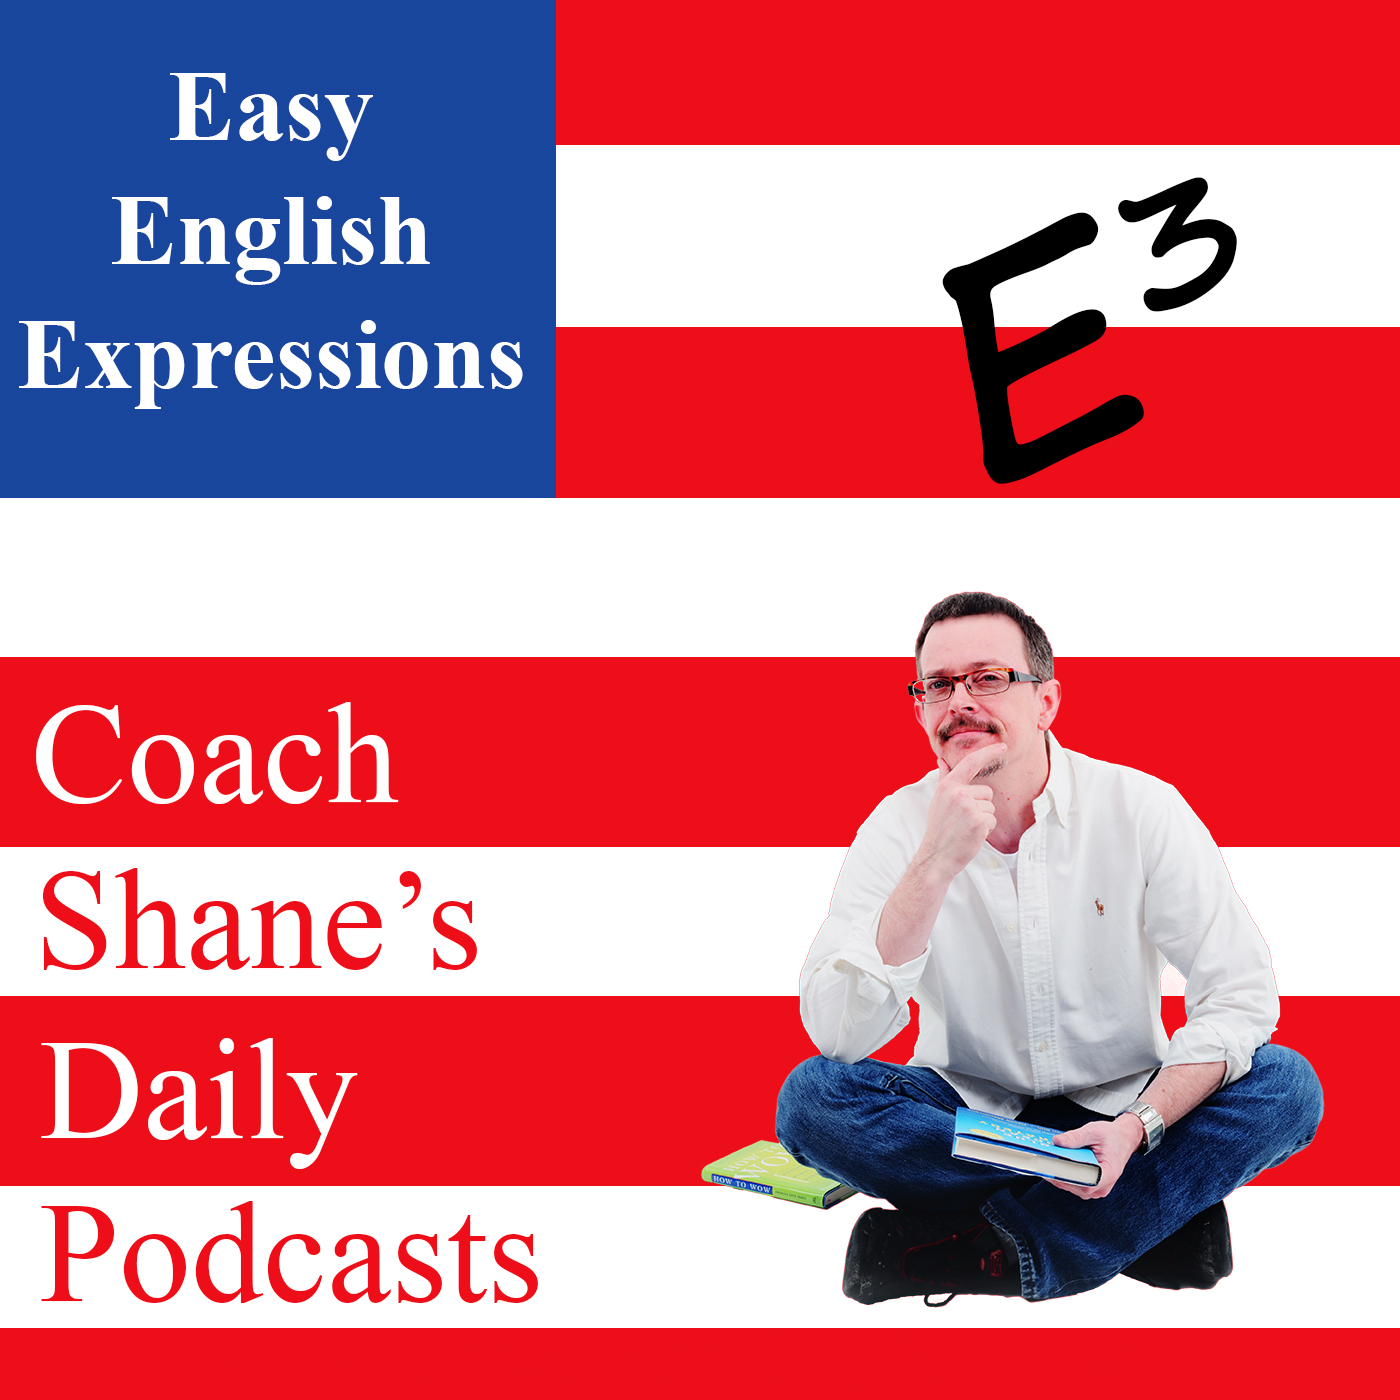 34 Daily Easy English Expression PODCAST—to SELL someone OUT